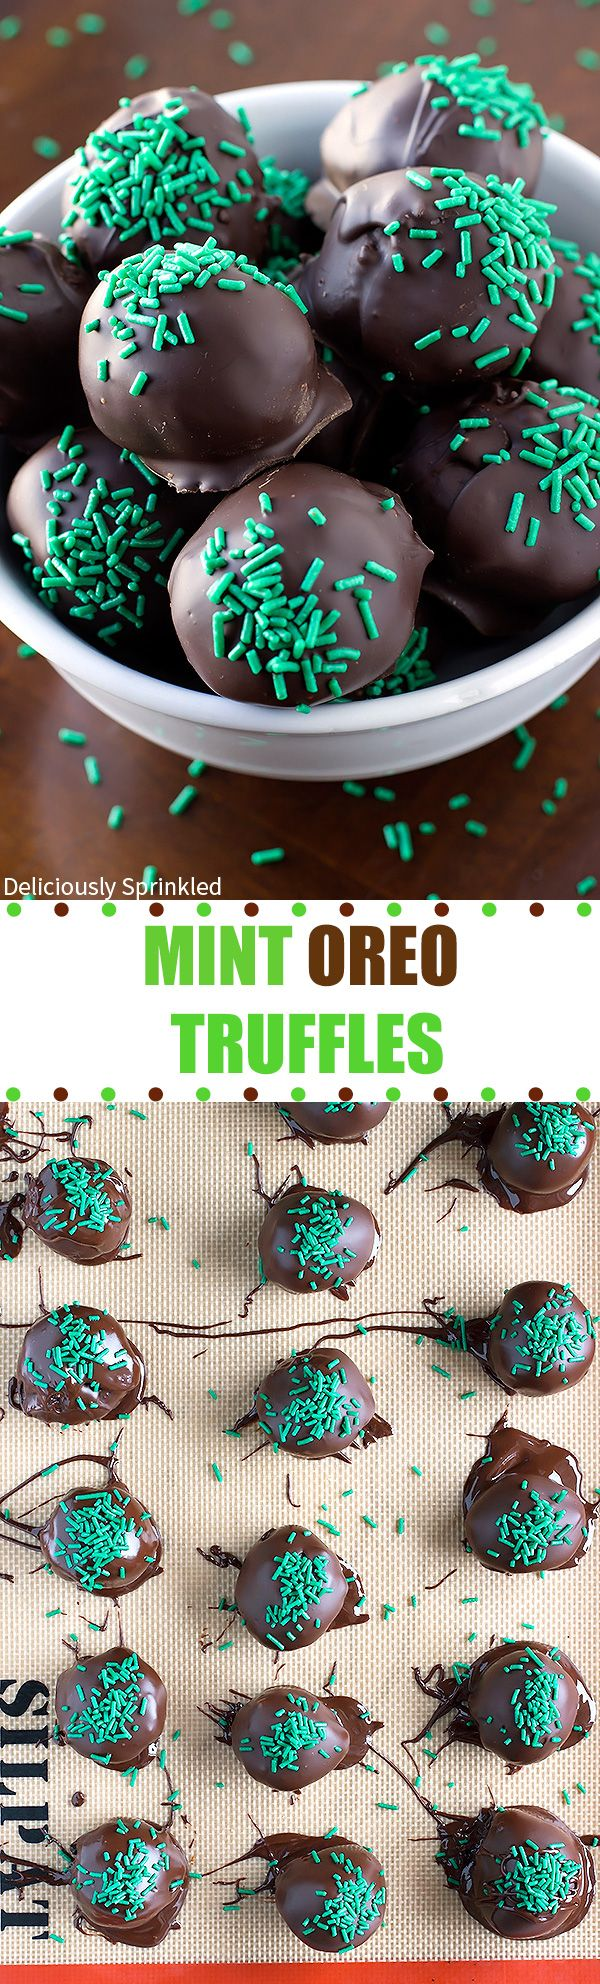 Easy Mint Oreo Truffles